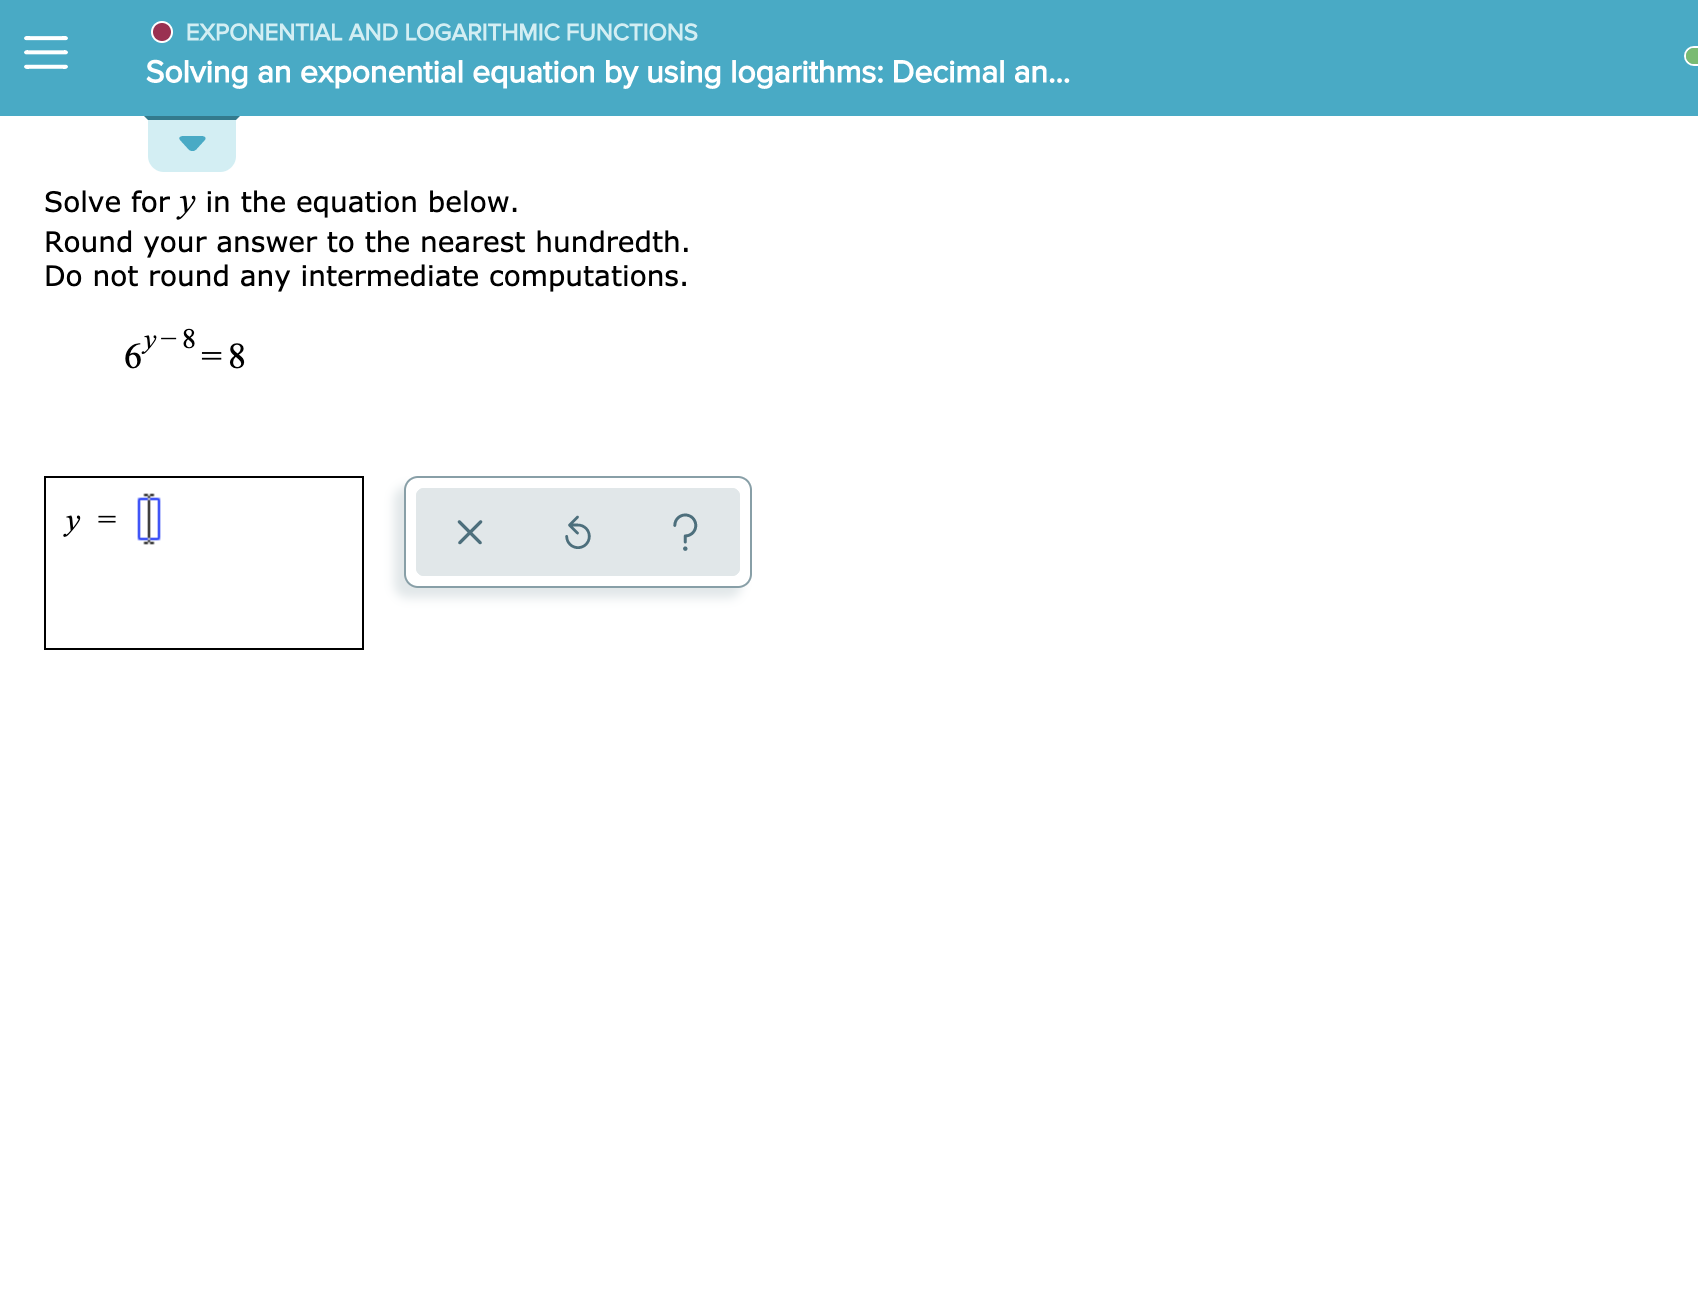 O EXPONENTIAL AND LOGARITHMIC FUNCTIONS Solving an exponential equation by using logarithms: Decimal an... Solve for y in the equation below. Round your answer to the nearest hundredth Do not round any intermediate computations. 6 8 ? X